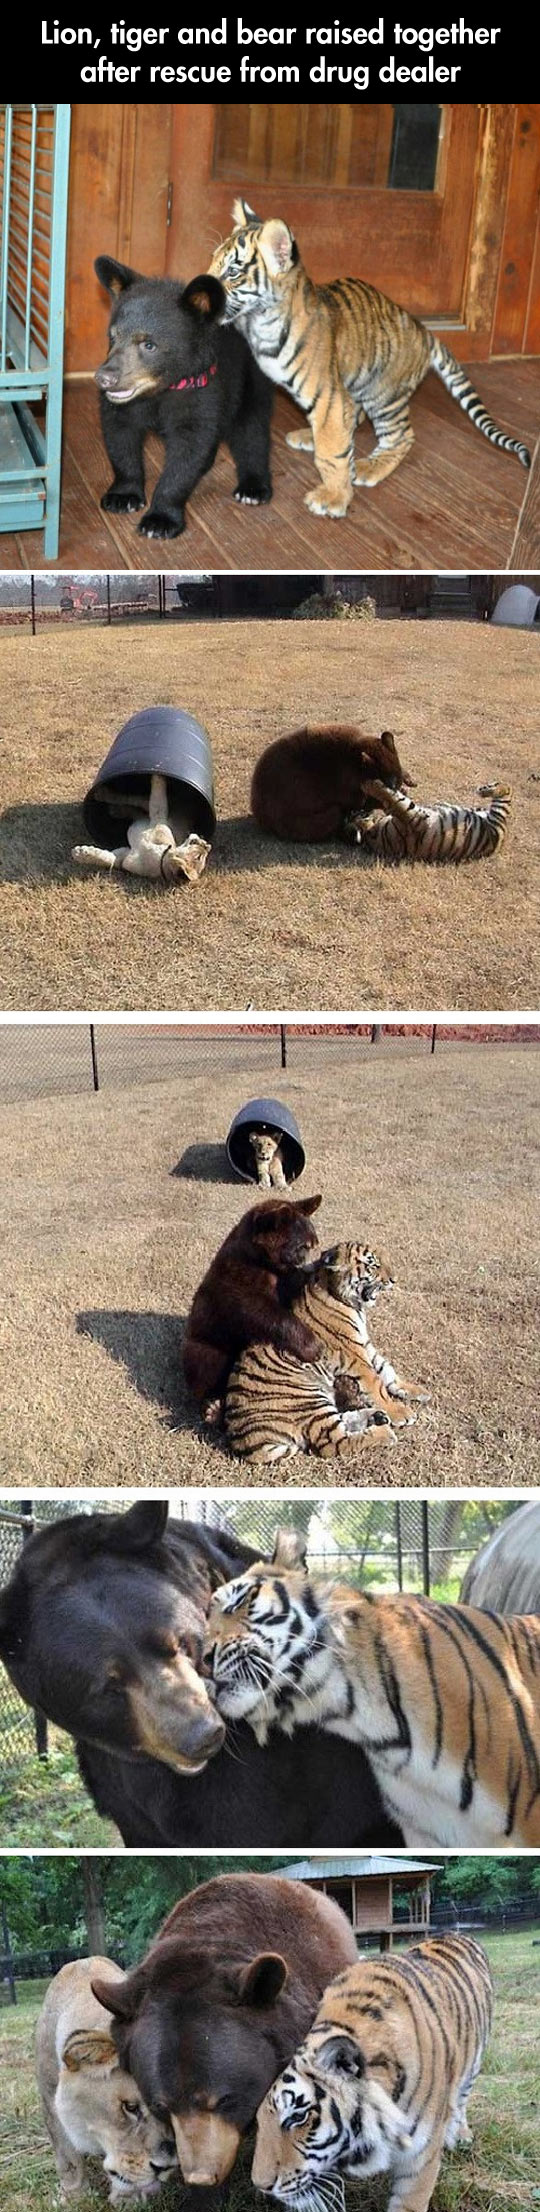 A Group Of Unlikely Friends